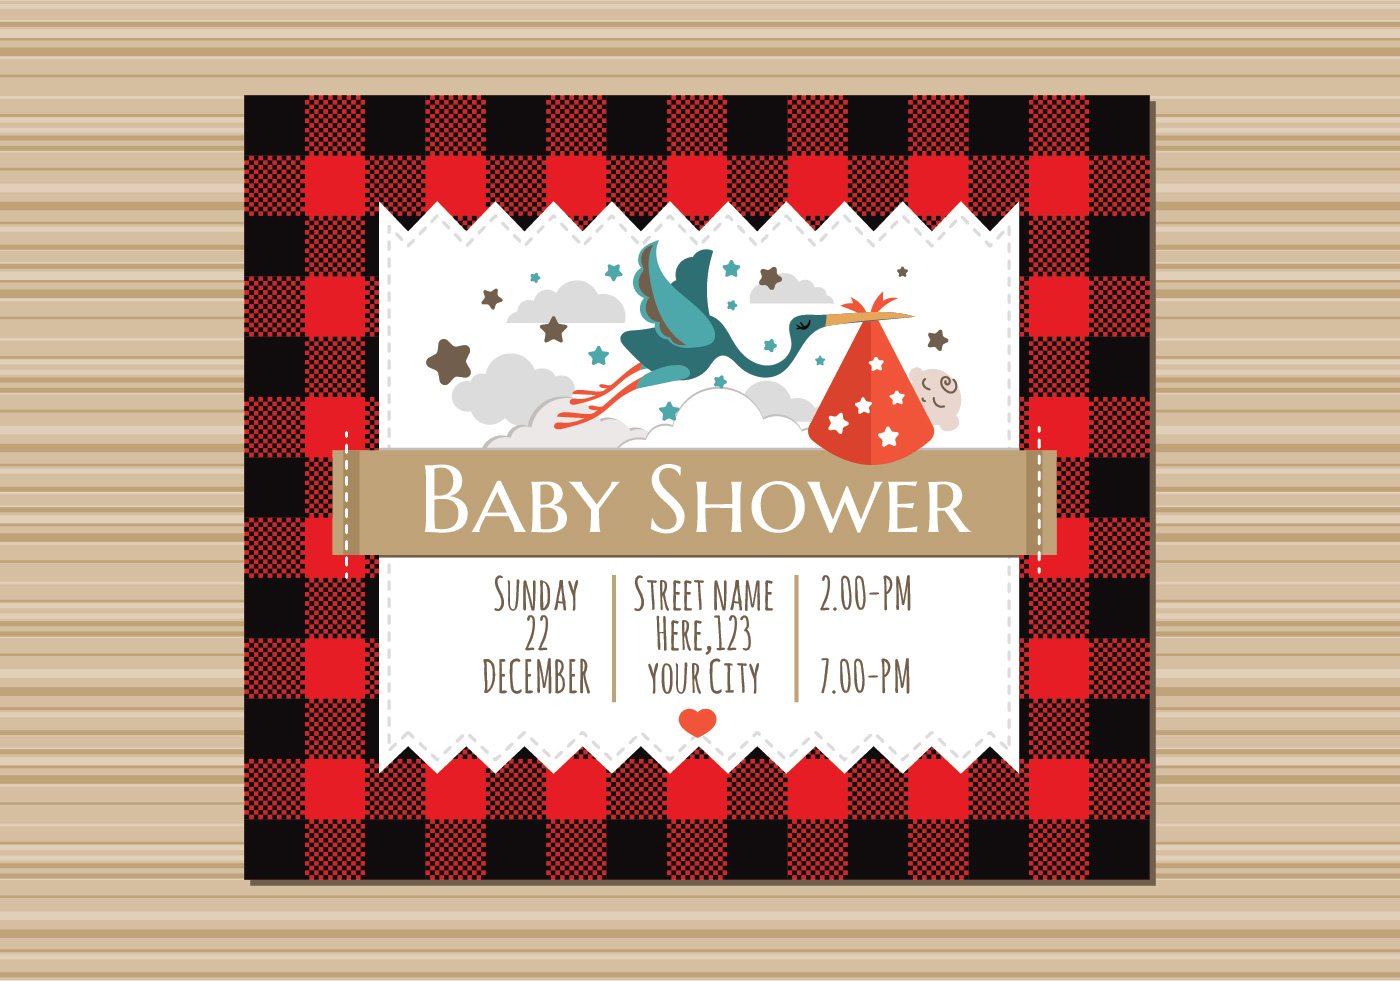 Newborn Stroller Buffalo Plaid Baby Shower Invitation Download Free